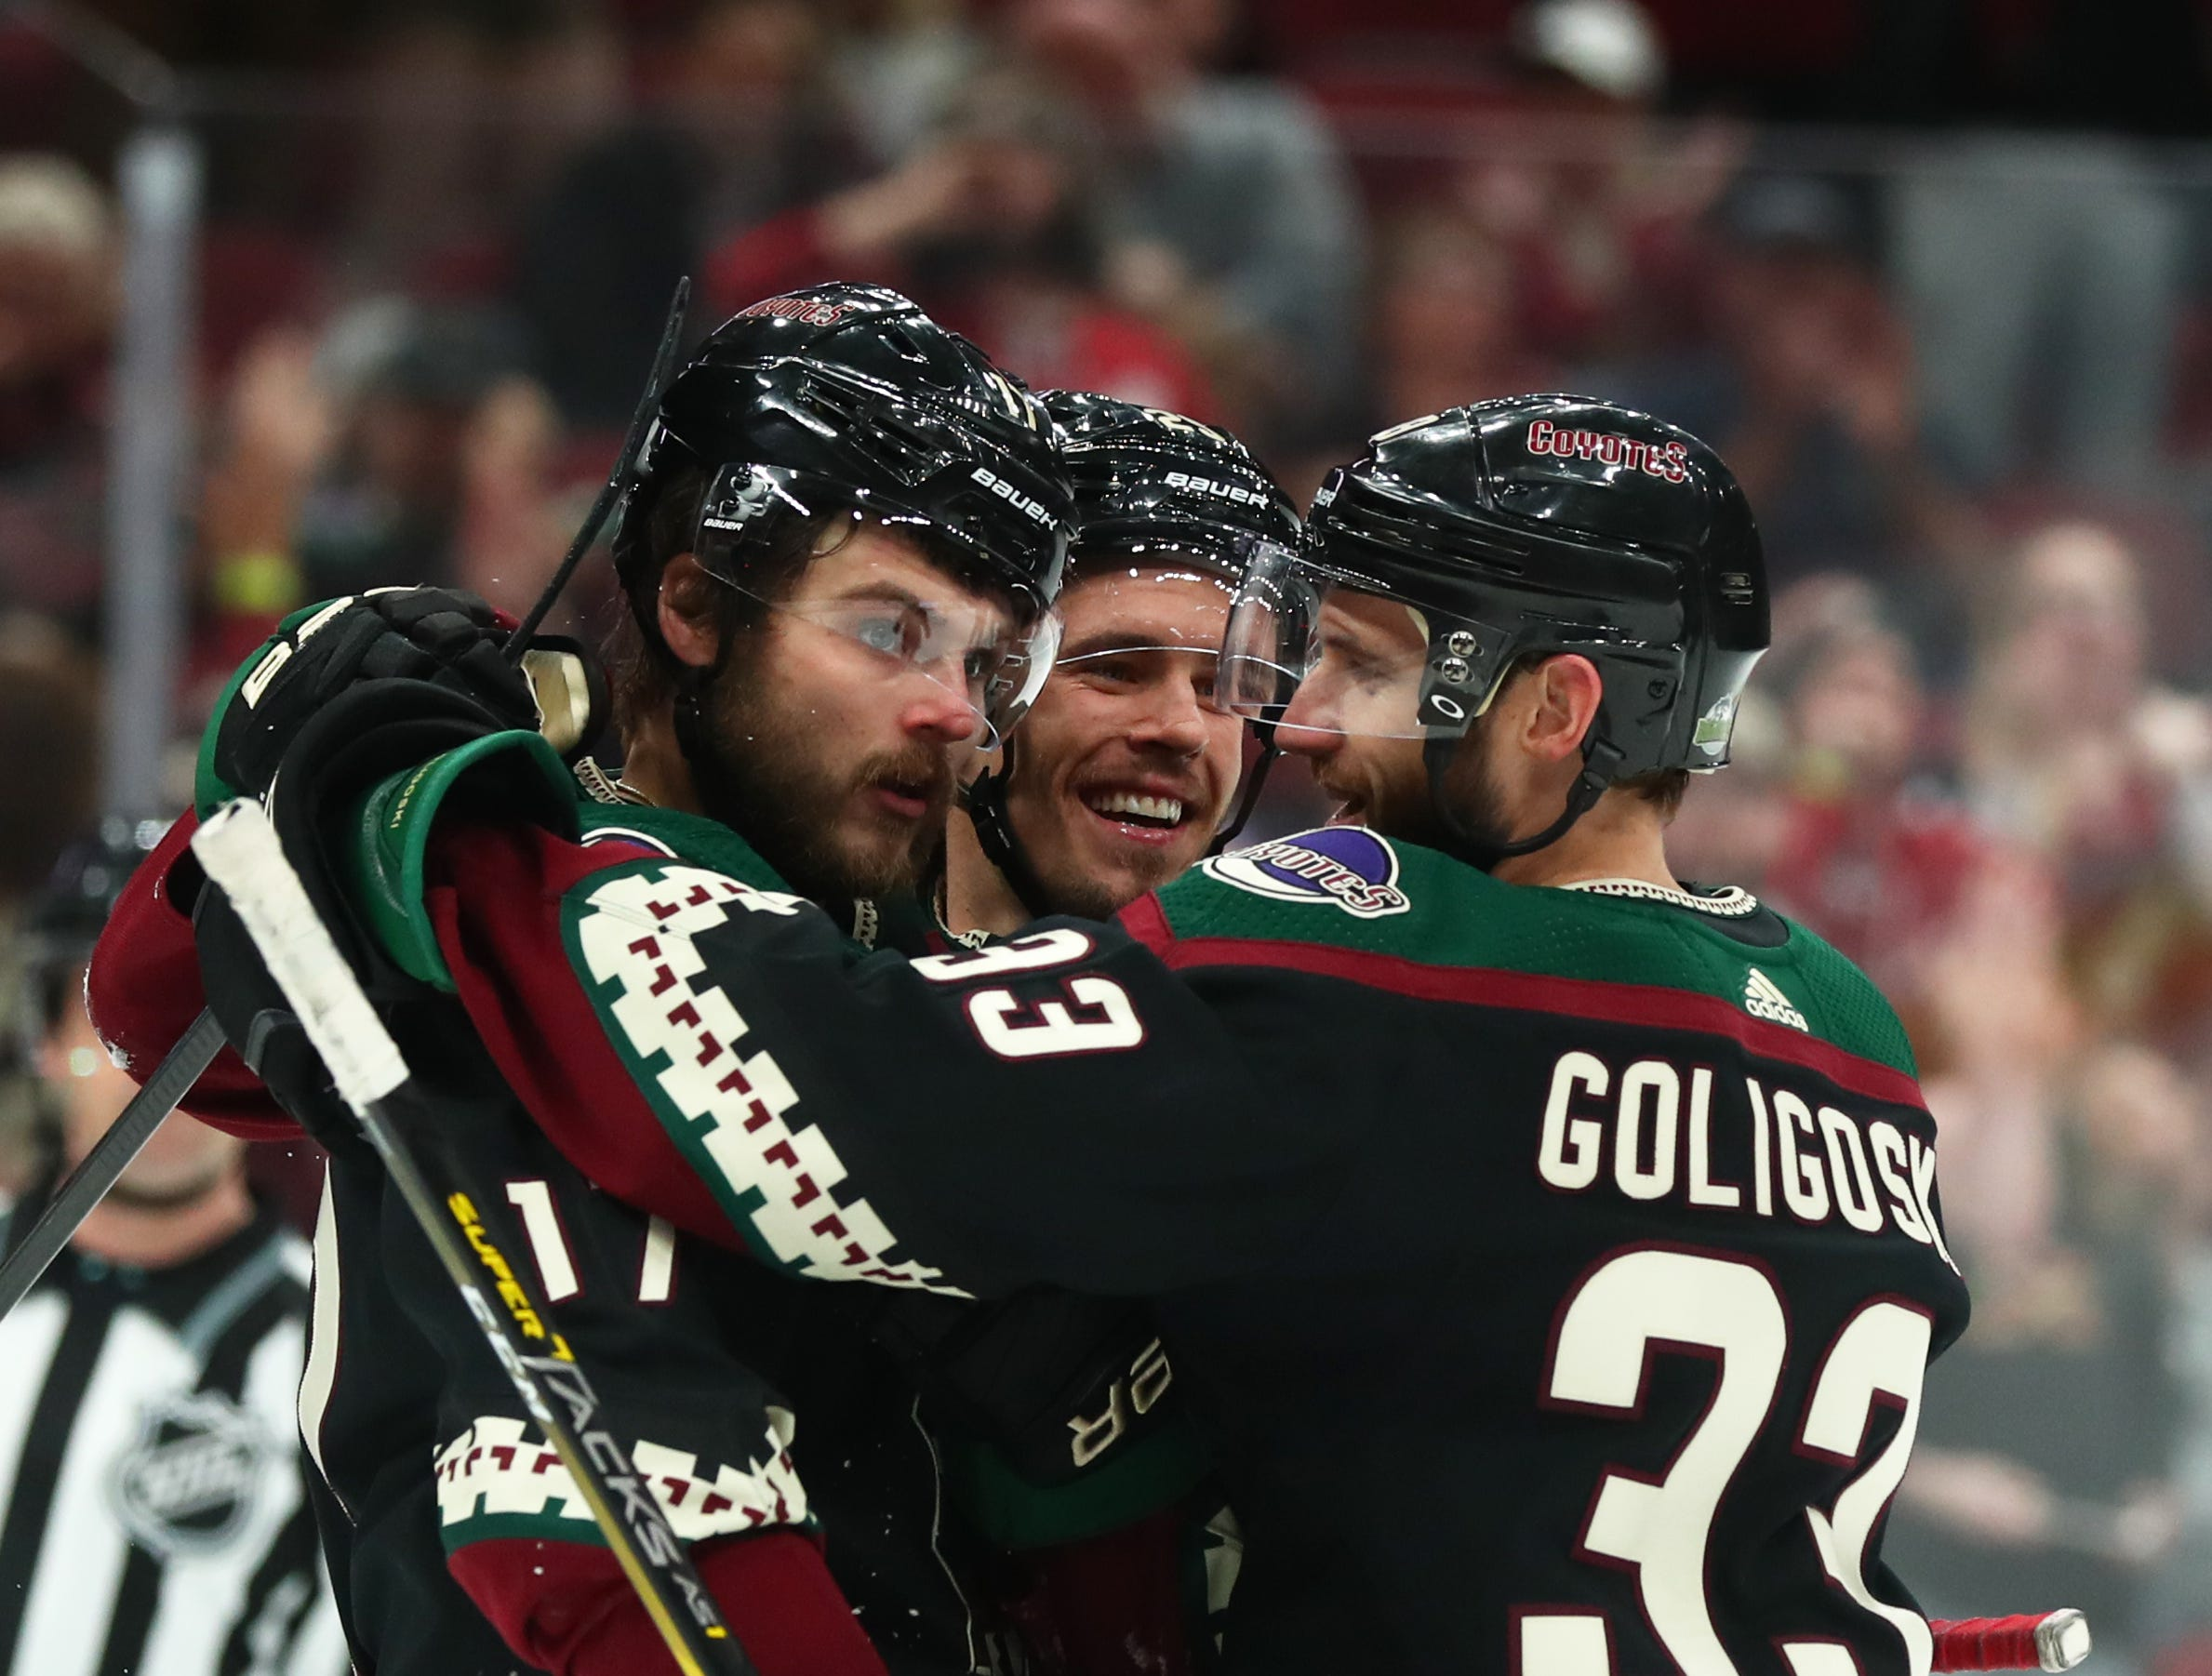 Apr 6, 2019; Glendale, AZ, USA; Arizona Coyotes center Alex Galchenyuk (17), Nick Cousins (25) and Alex Goligoski (33) celebrate a goal against the Winnipeg Jets in the first period at Gila River Arena. Mandatory Credit: Mark J. Rebilas-USA TODAY Sports